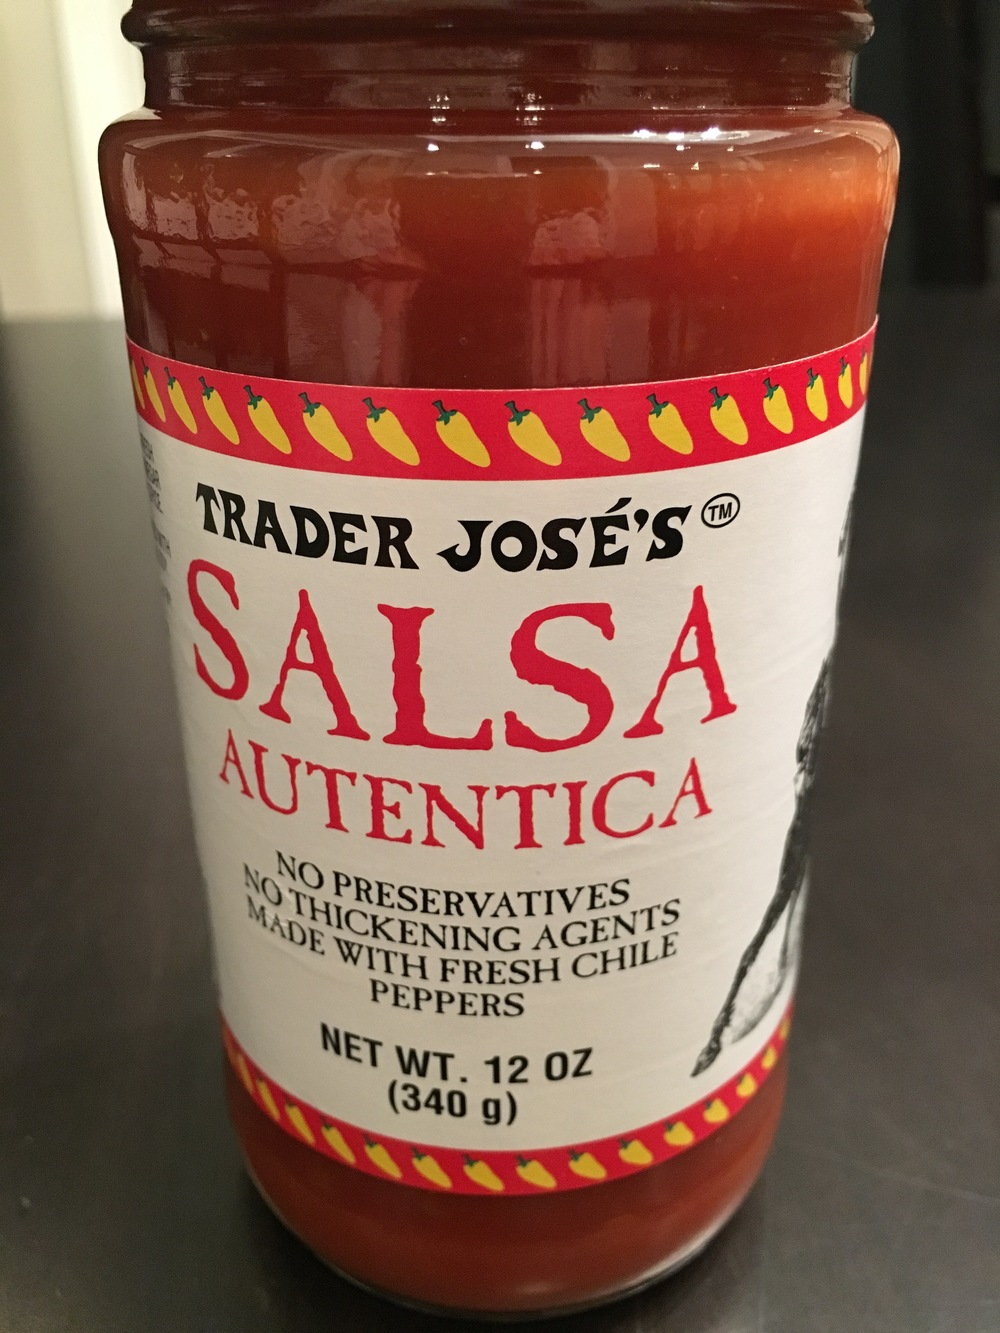 Prior to my son liking chips and salsa, my pantry was stocked with this stuff at all times because of my hub. Nowadays, I buy 5 bottles a week to keep up the addiction going.  Thoughtfulness  at it's best.